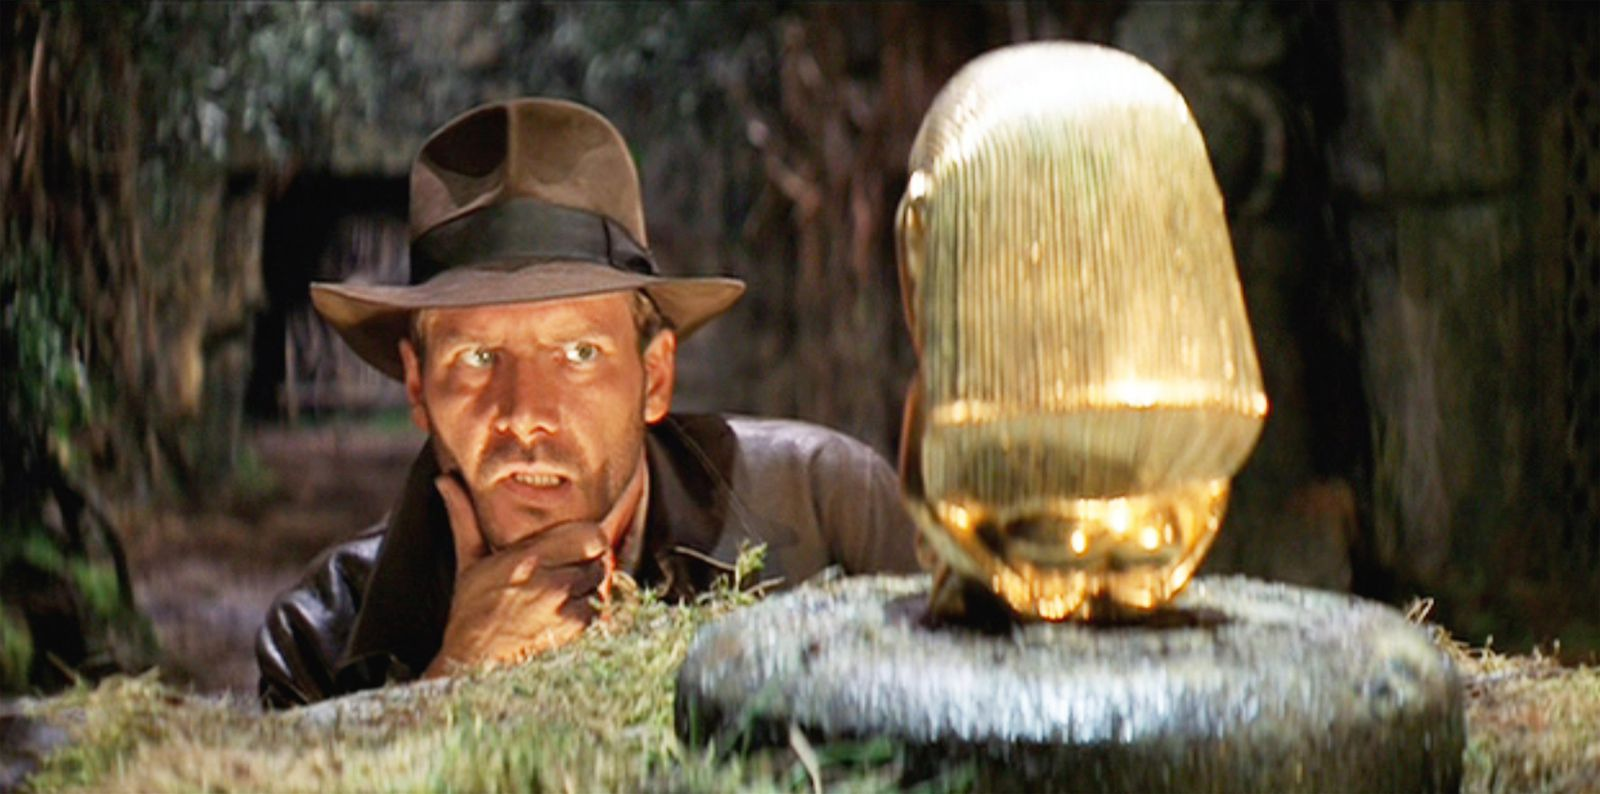 """""""That belongs in a museum!"""" Indiana Jones shouts at the man in the Panama hat, instantly creating the most memorable archaeological catch"""